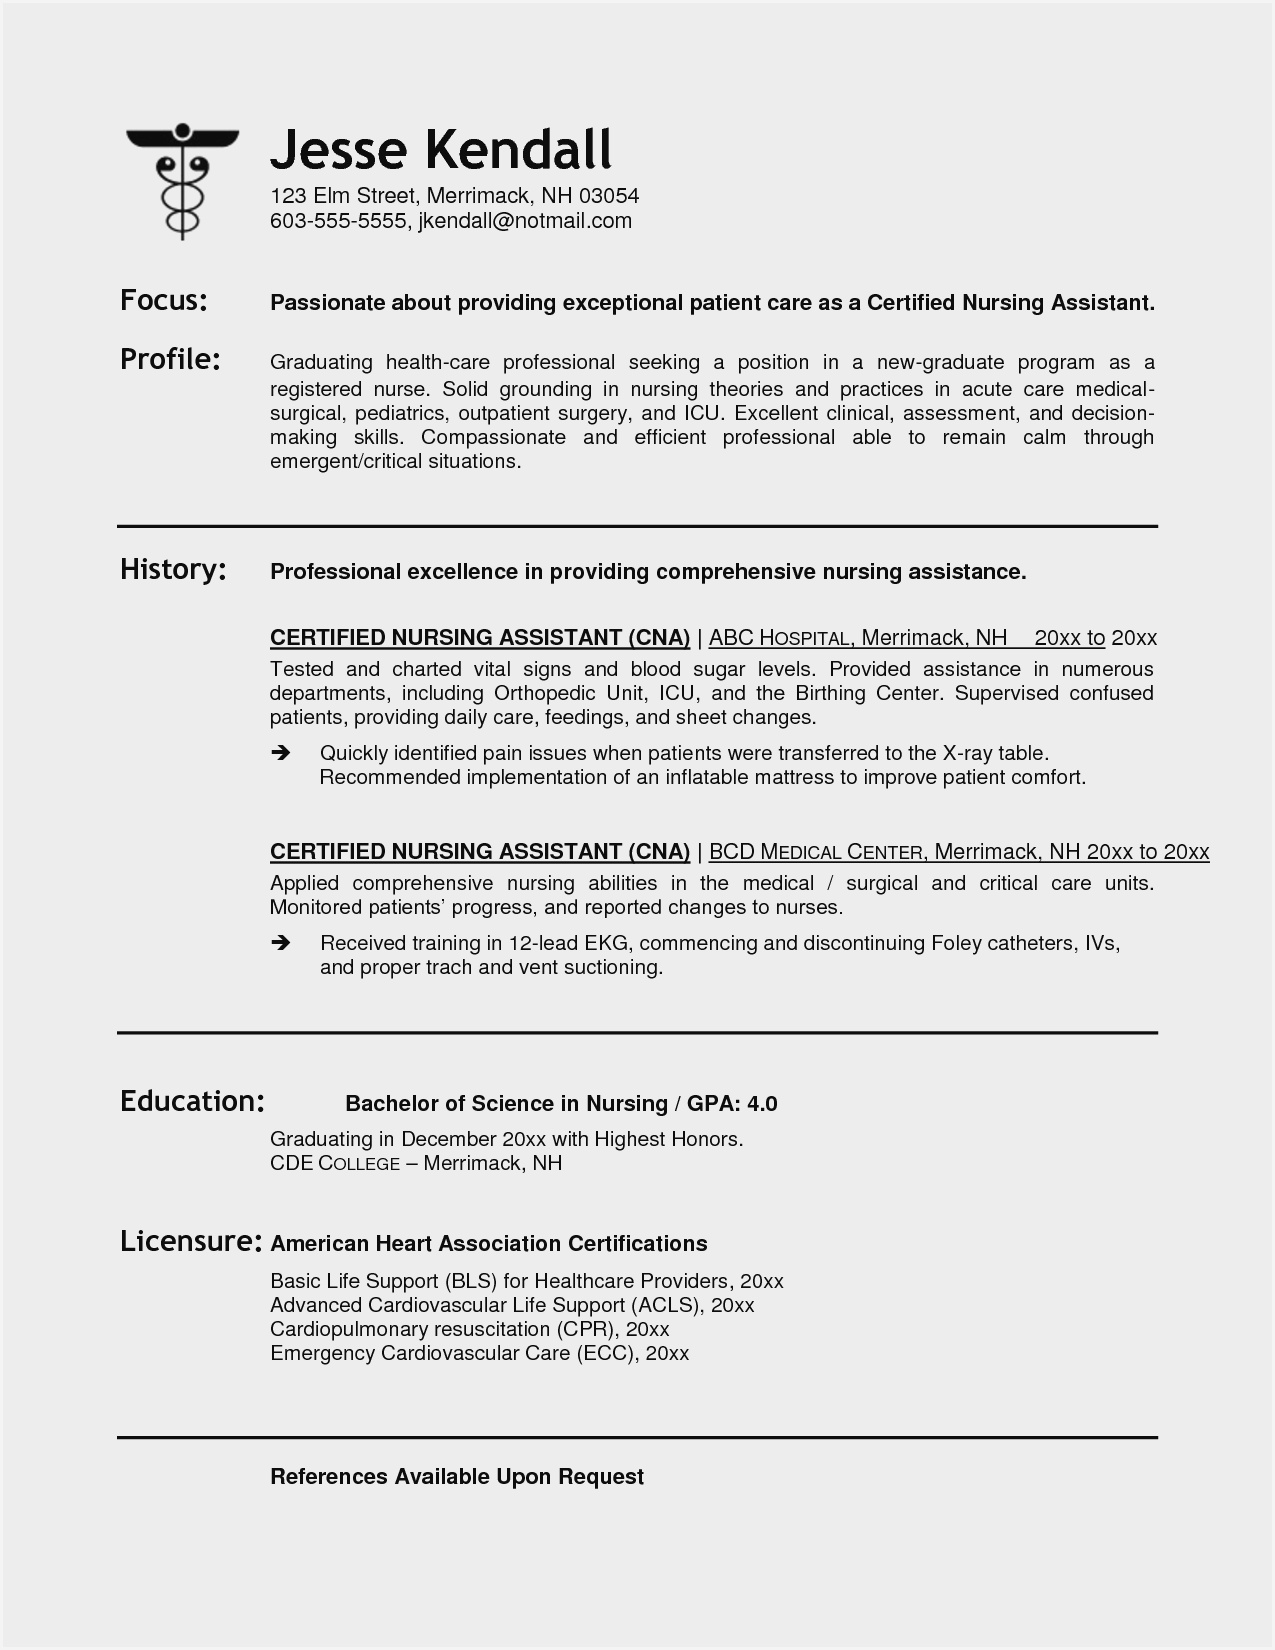 resume objective examples for nursing assistant sample entry level cna the consulting and Resume Entry Level Cna Resume Objective